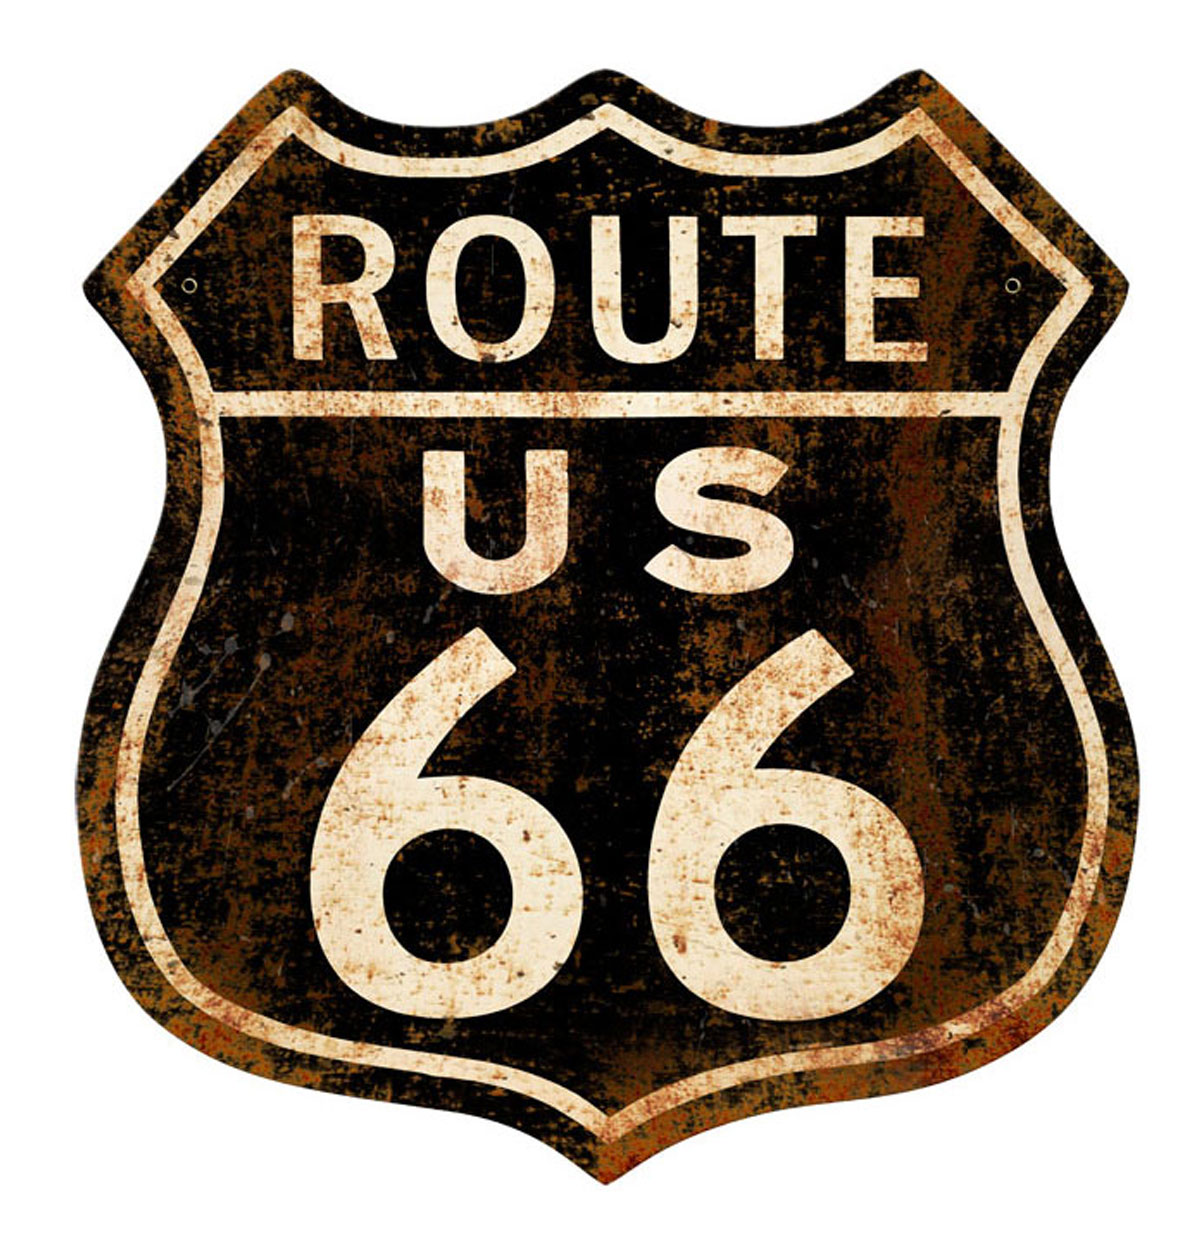 Route 66 Rusty Zwaar Metalen Bord